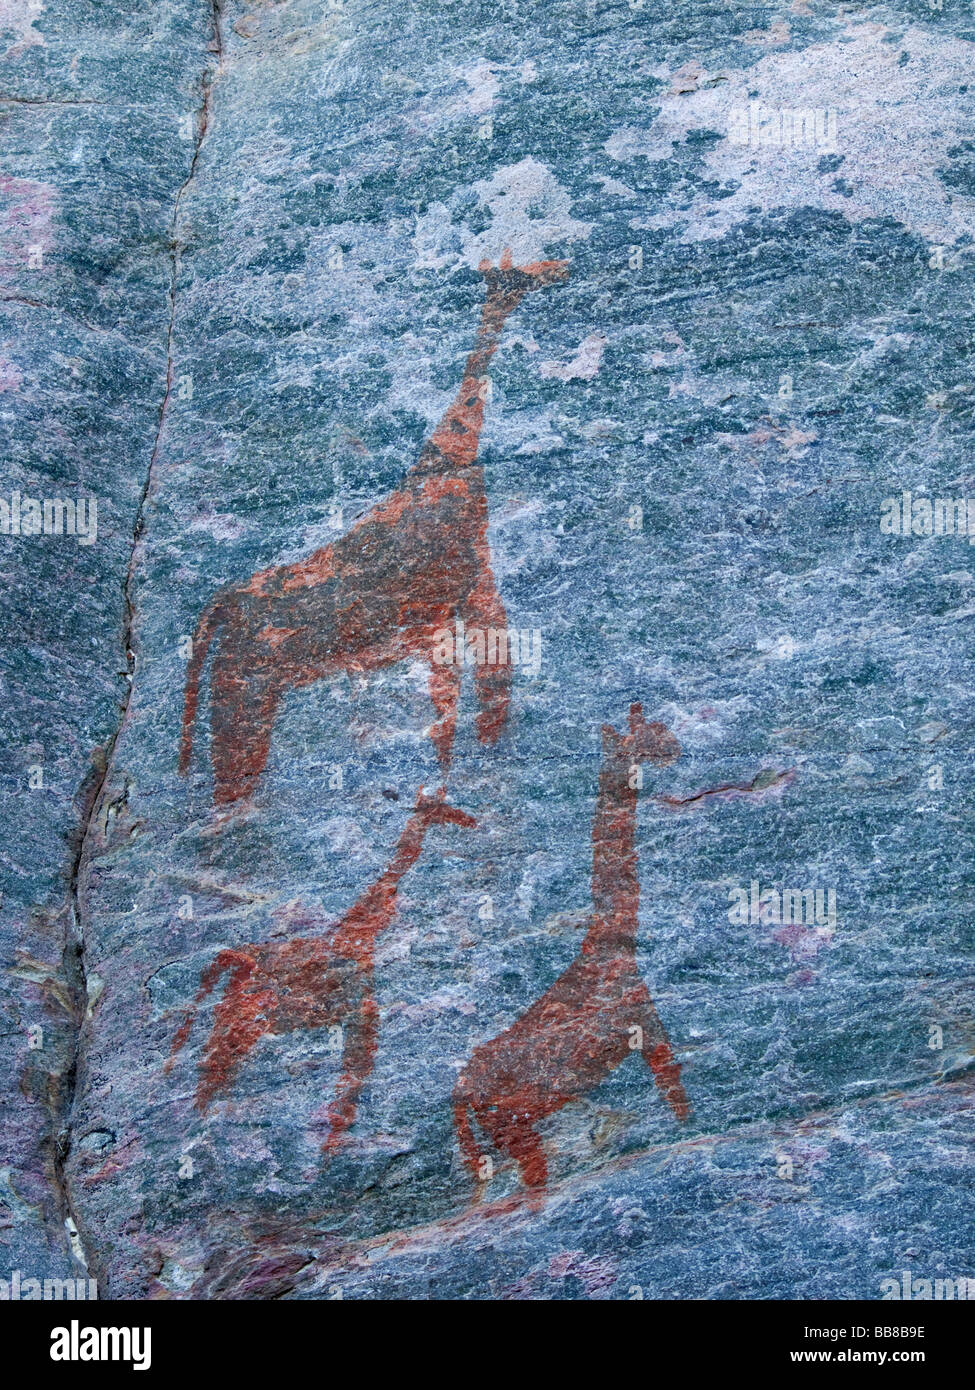 Rock paintings of Giraffes on the Rhino-Trail of the UNESCO World Heritage Site, Tsodilo Hills, Botswana, Africa - Stock Image